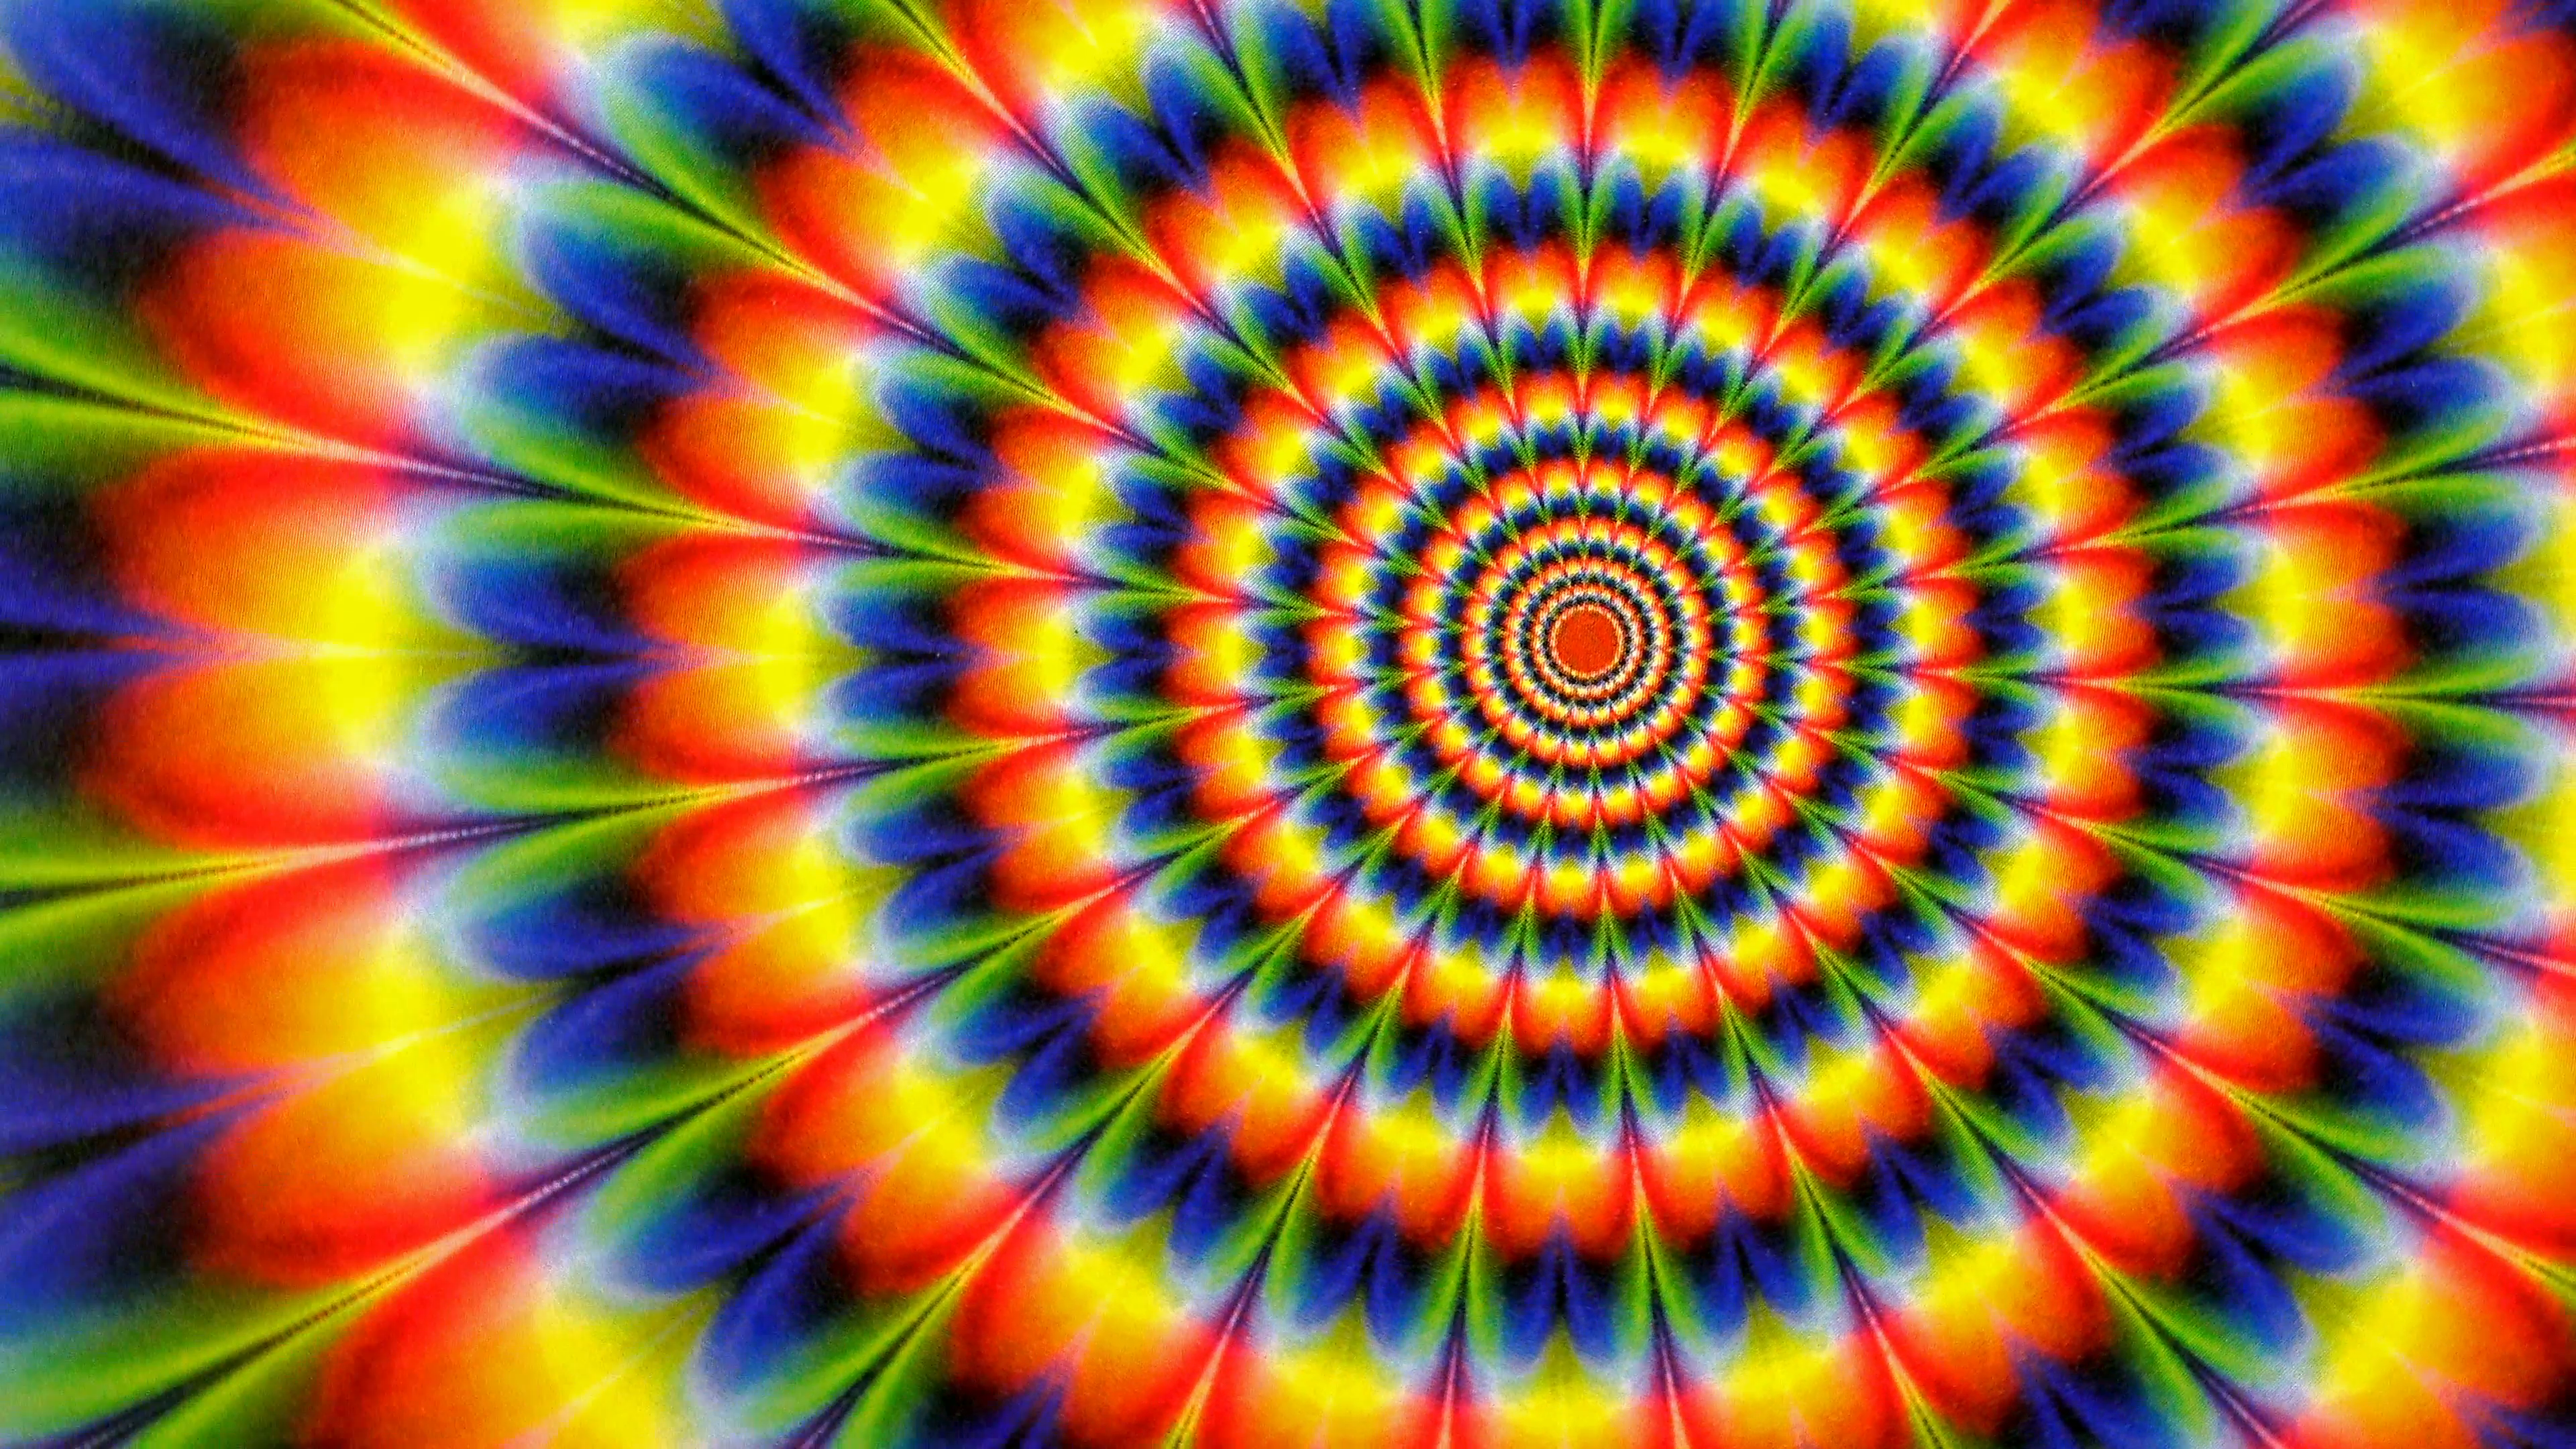 Hippy Tie Dyed Radial Pattern Animation Background Motion Background -  VideoBlocks - Tie Dye PNG HD